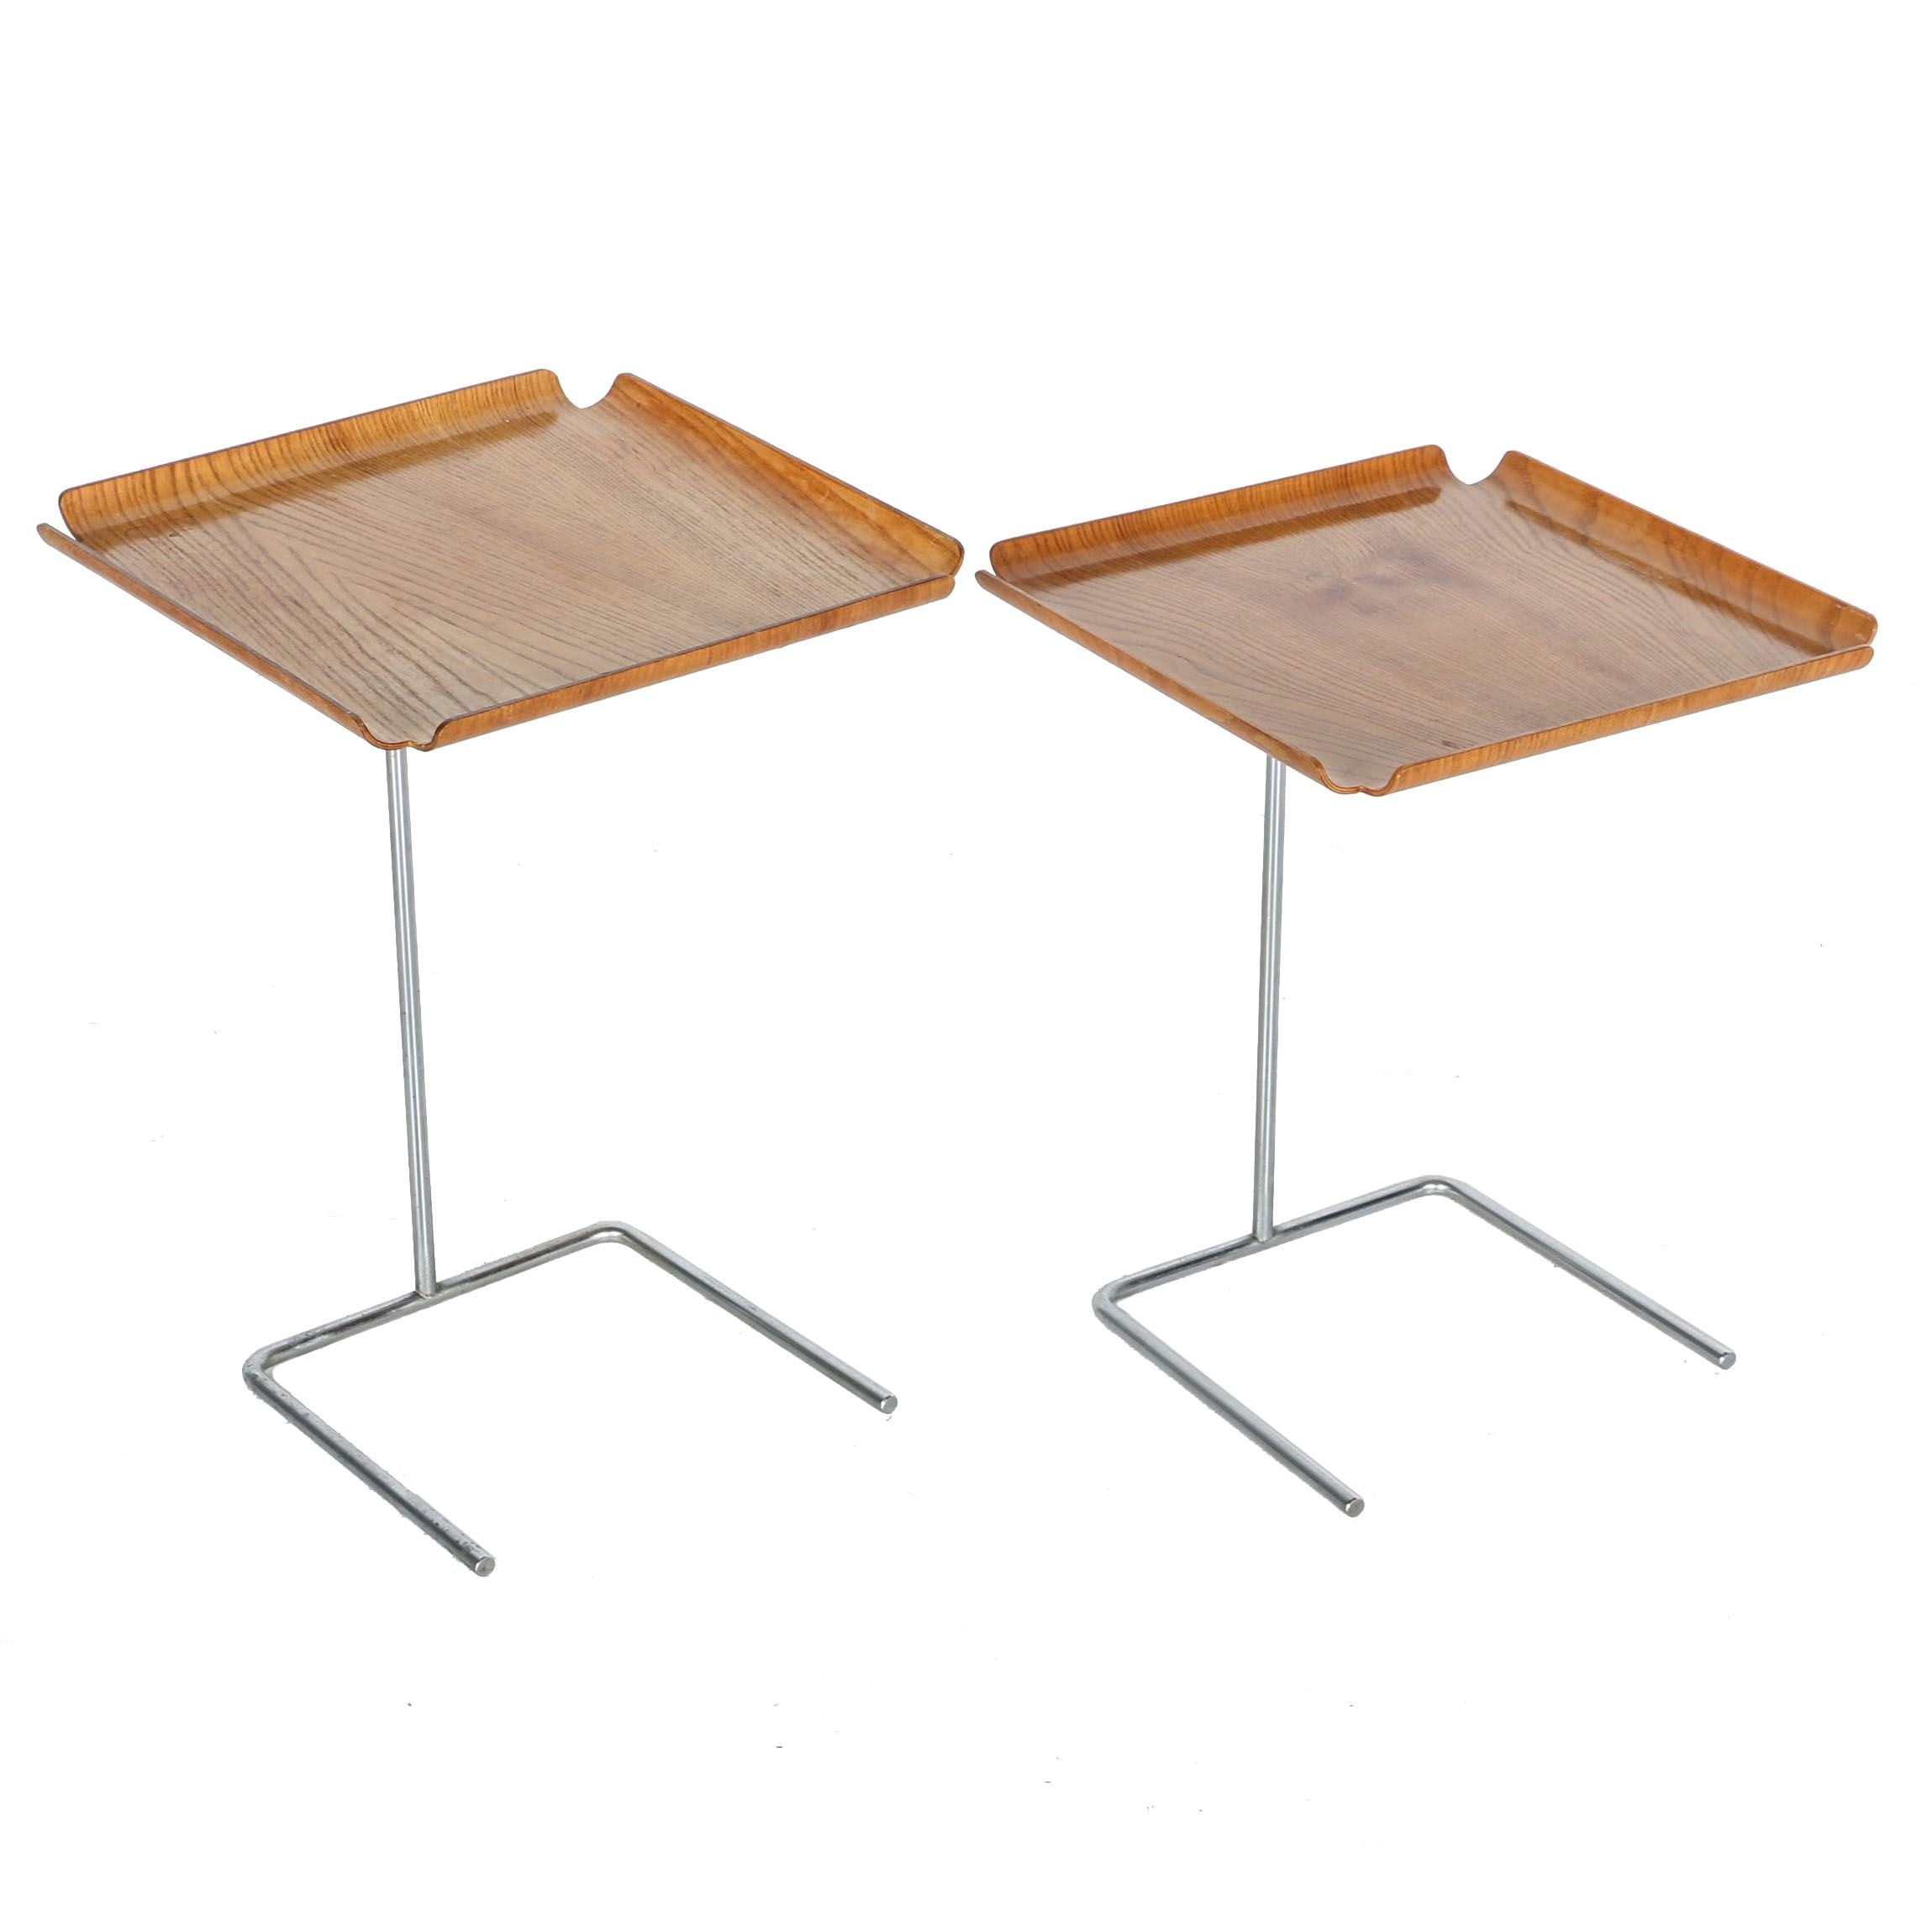 "Mid Century Modern ""4950"" Bentwood Tray Tables by George Nelson for Herman Miller With Invoice"